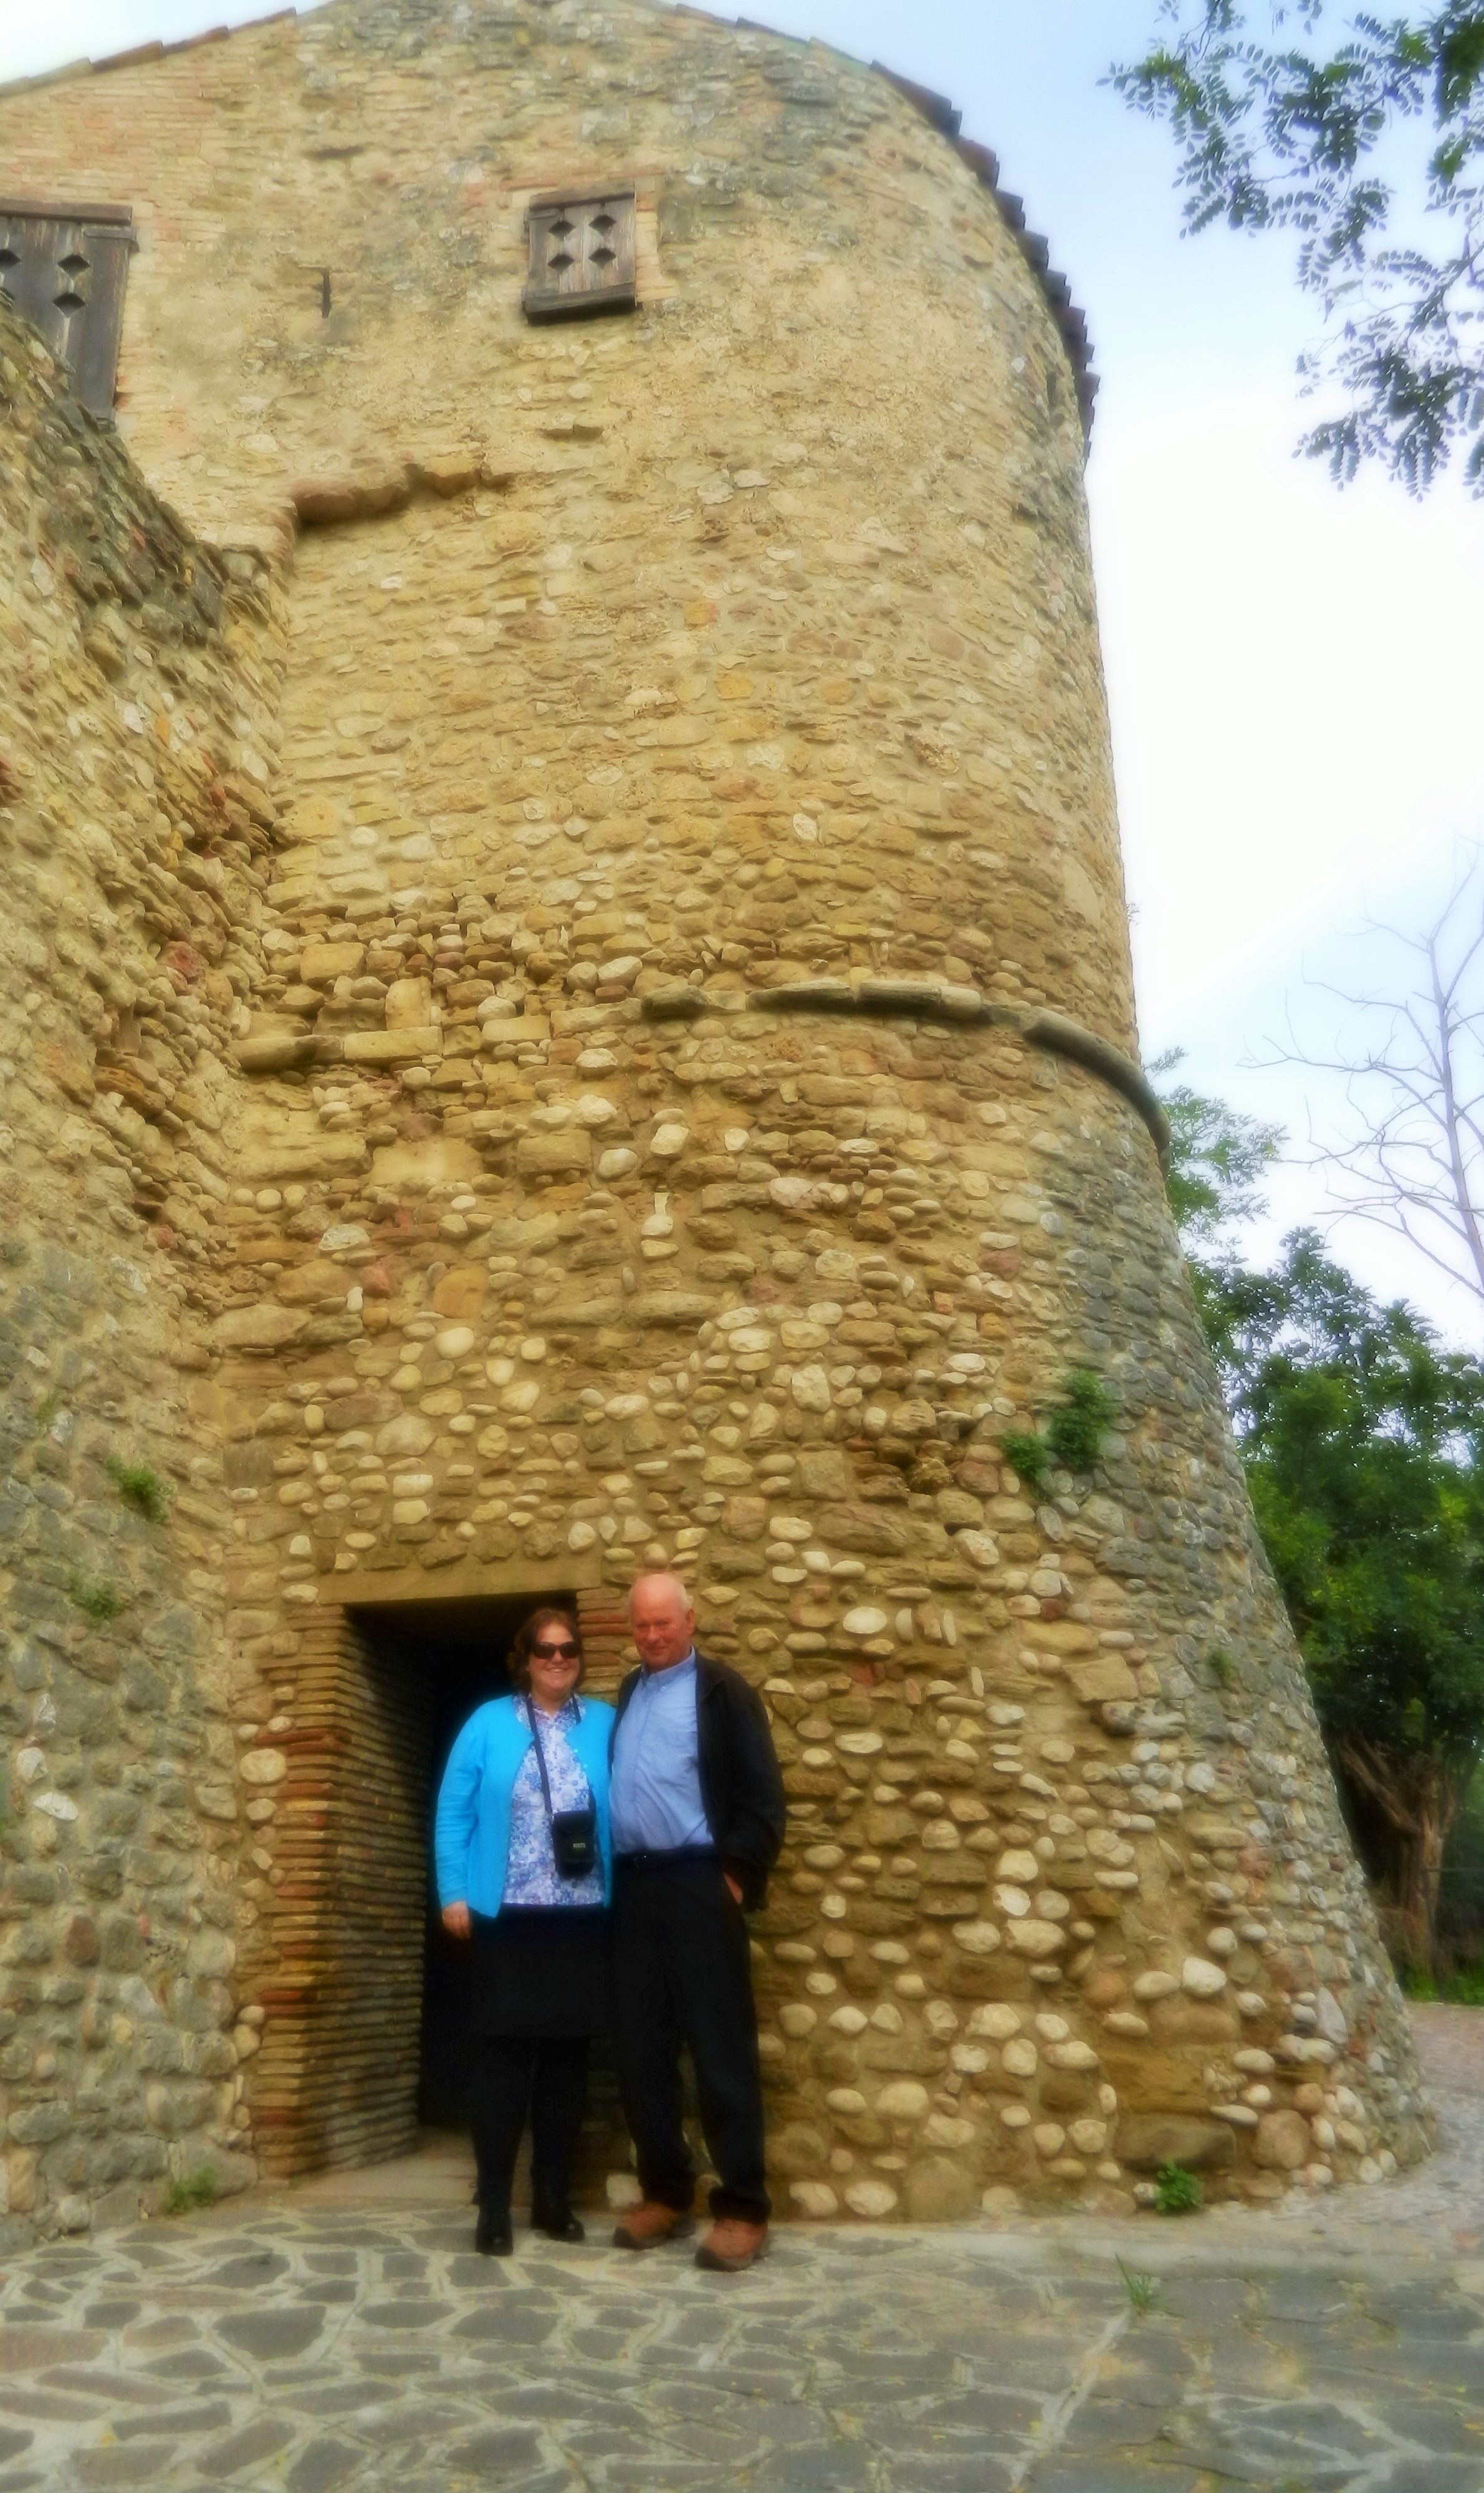 Helen and Ed enjoying their time in Abruzzo.